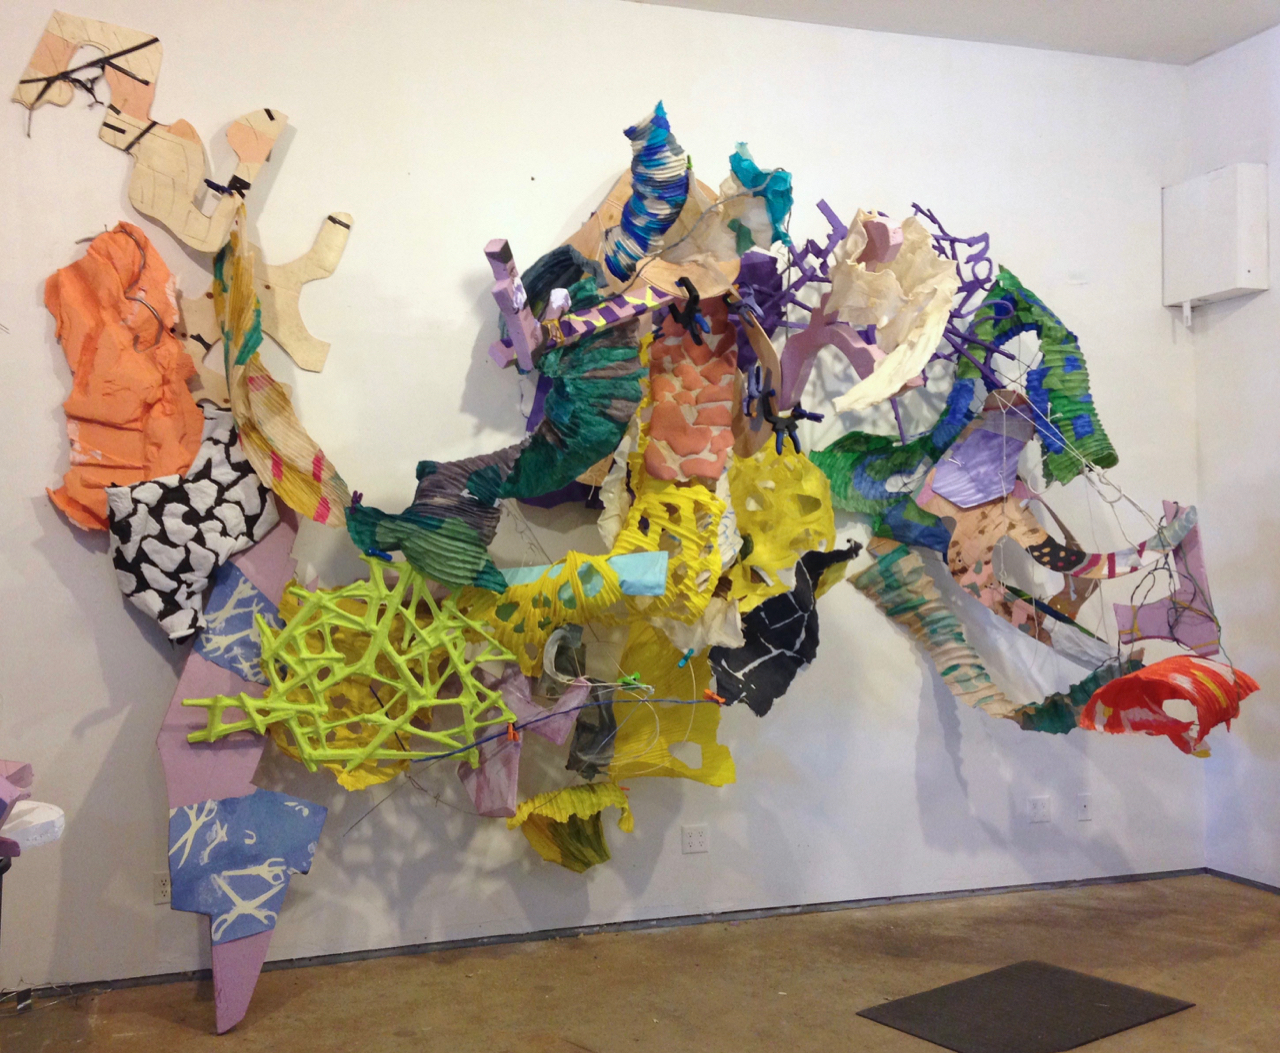 Abaca salad - studio sketch , handmade cast abaca and cotton papers, plywood, wire, pink insulation foam board, rope, 10' x 13' x 5', 2017